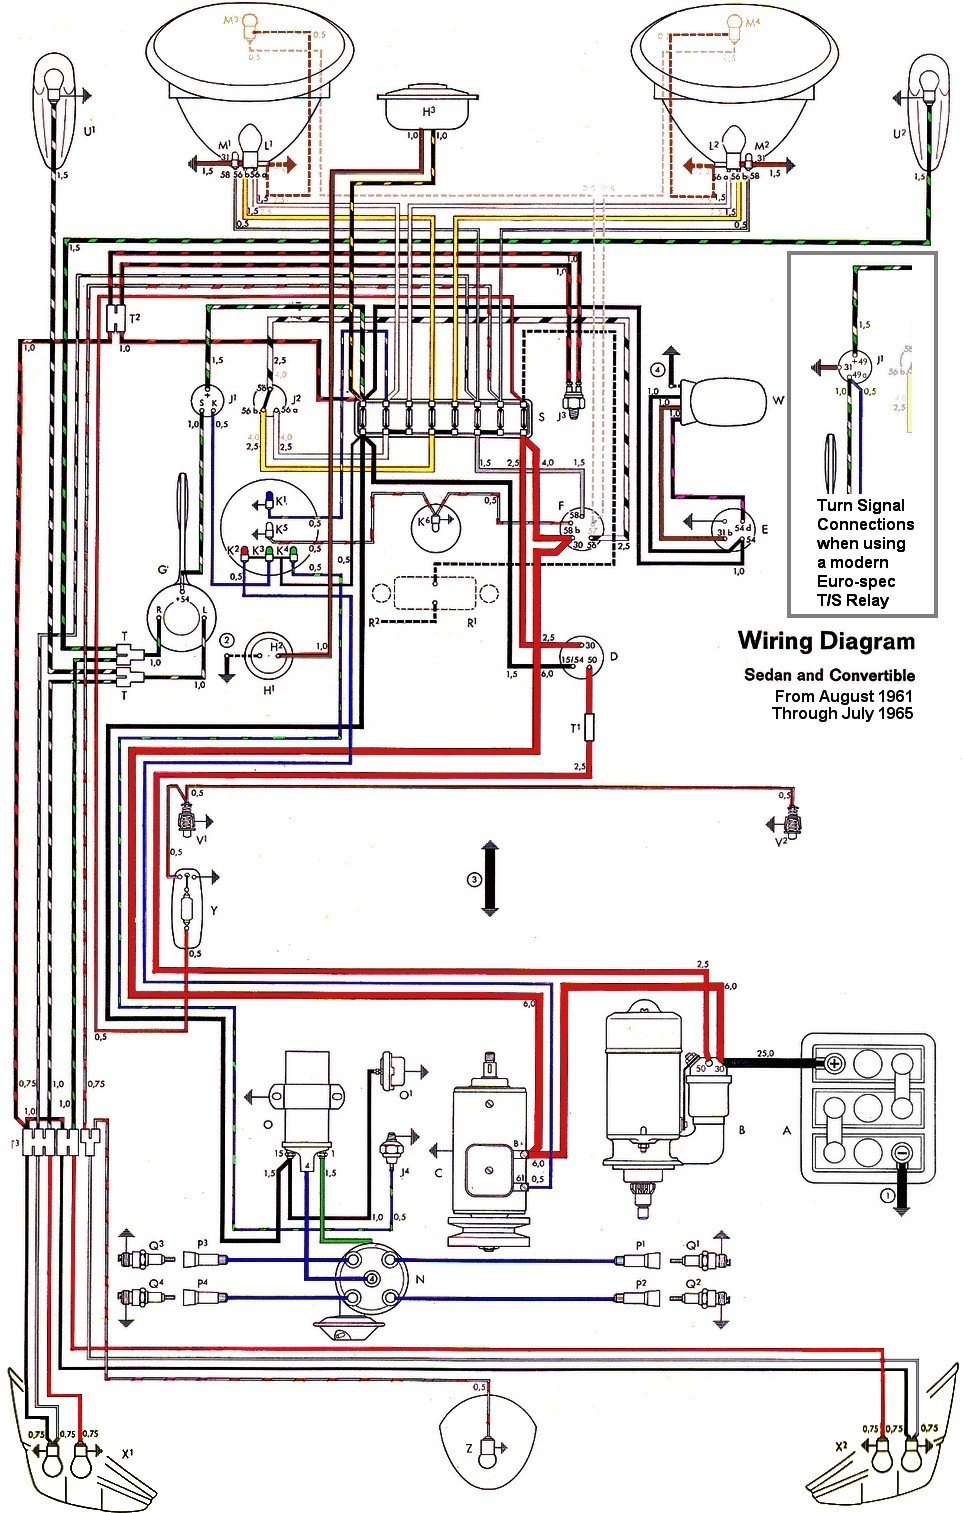 fuse diagram for 1973 vw super beetle - wiring diagram options gear-zip -  gear-zip.studiopyxis.it  pyxis